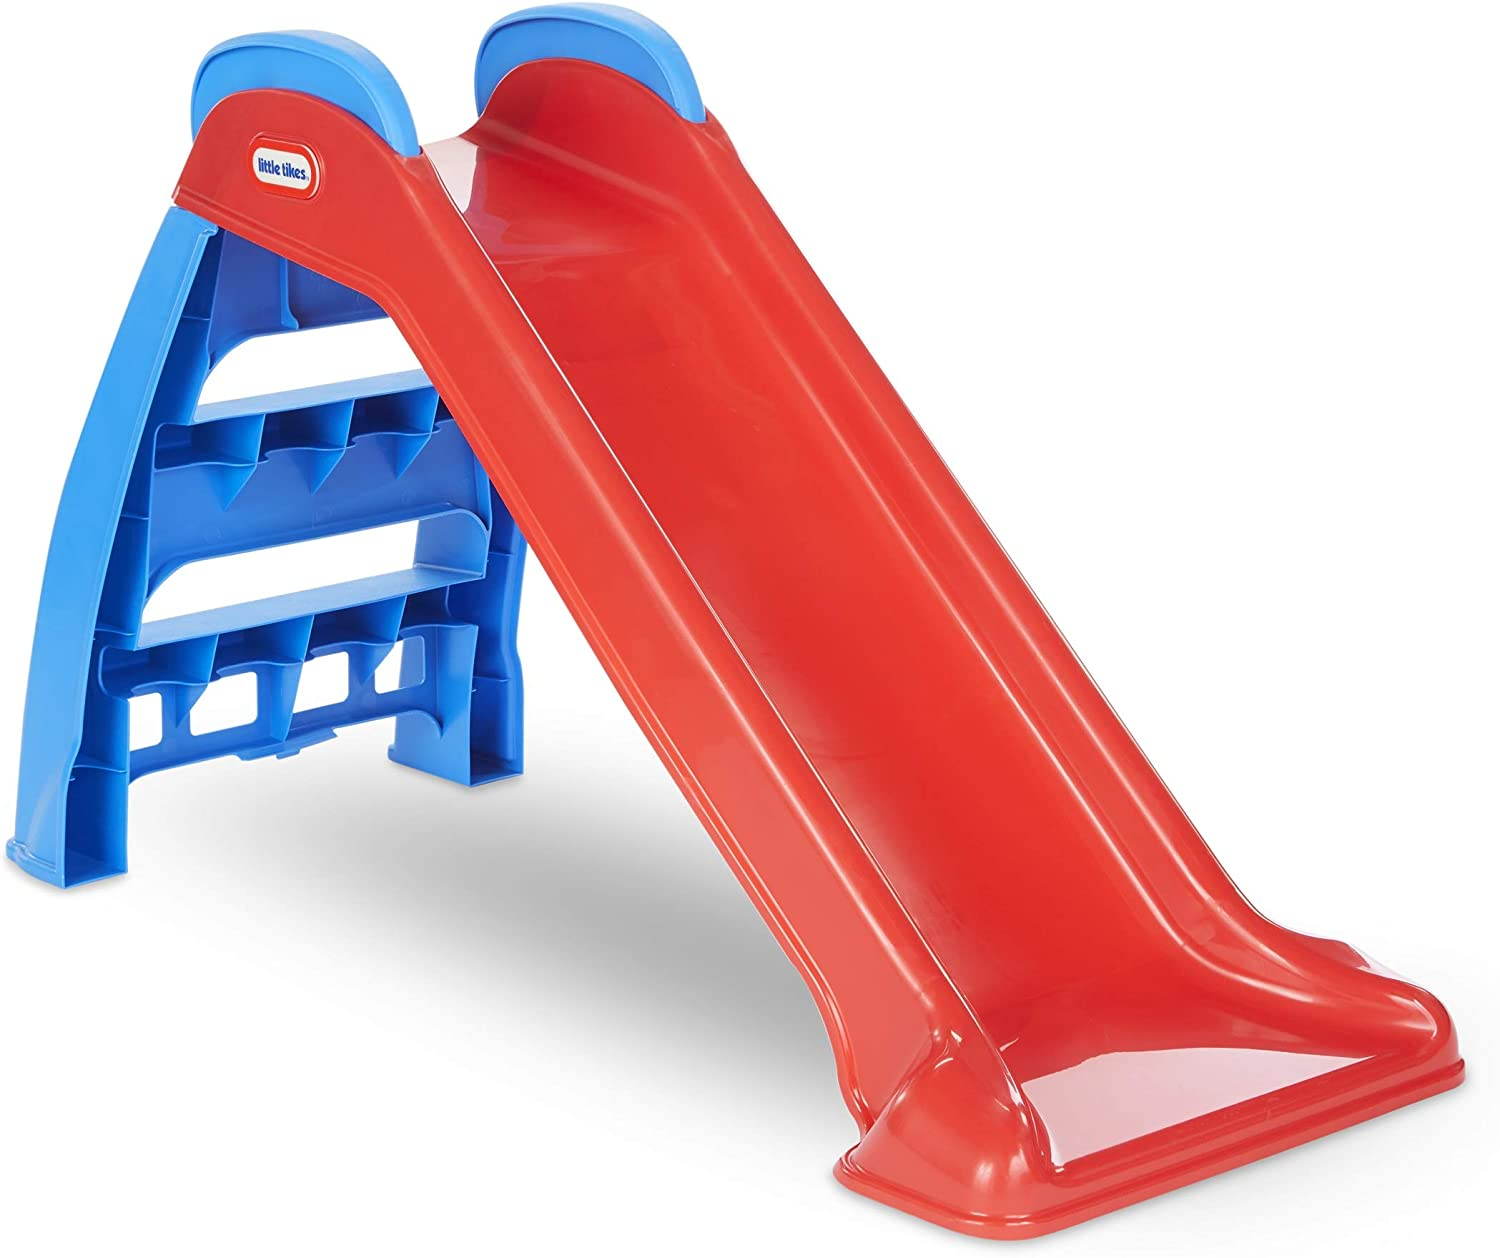 Top 10 Best Toddler Slide (2020 Reviews & Buying Guide) 5